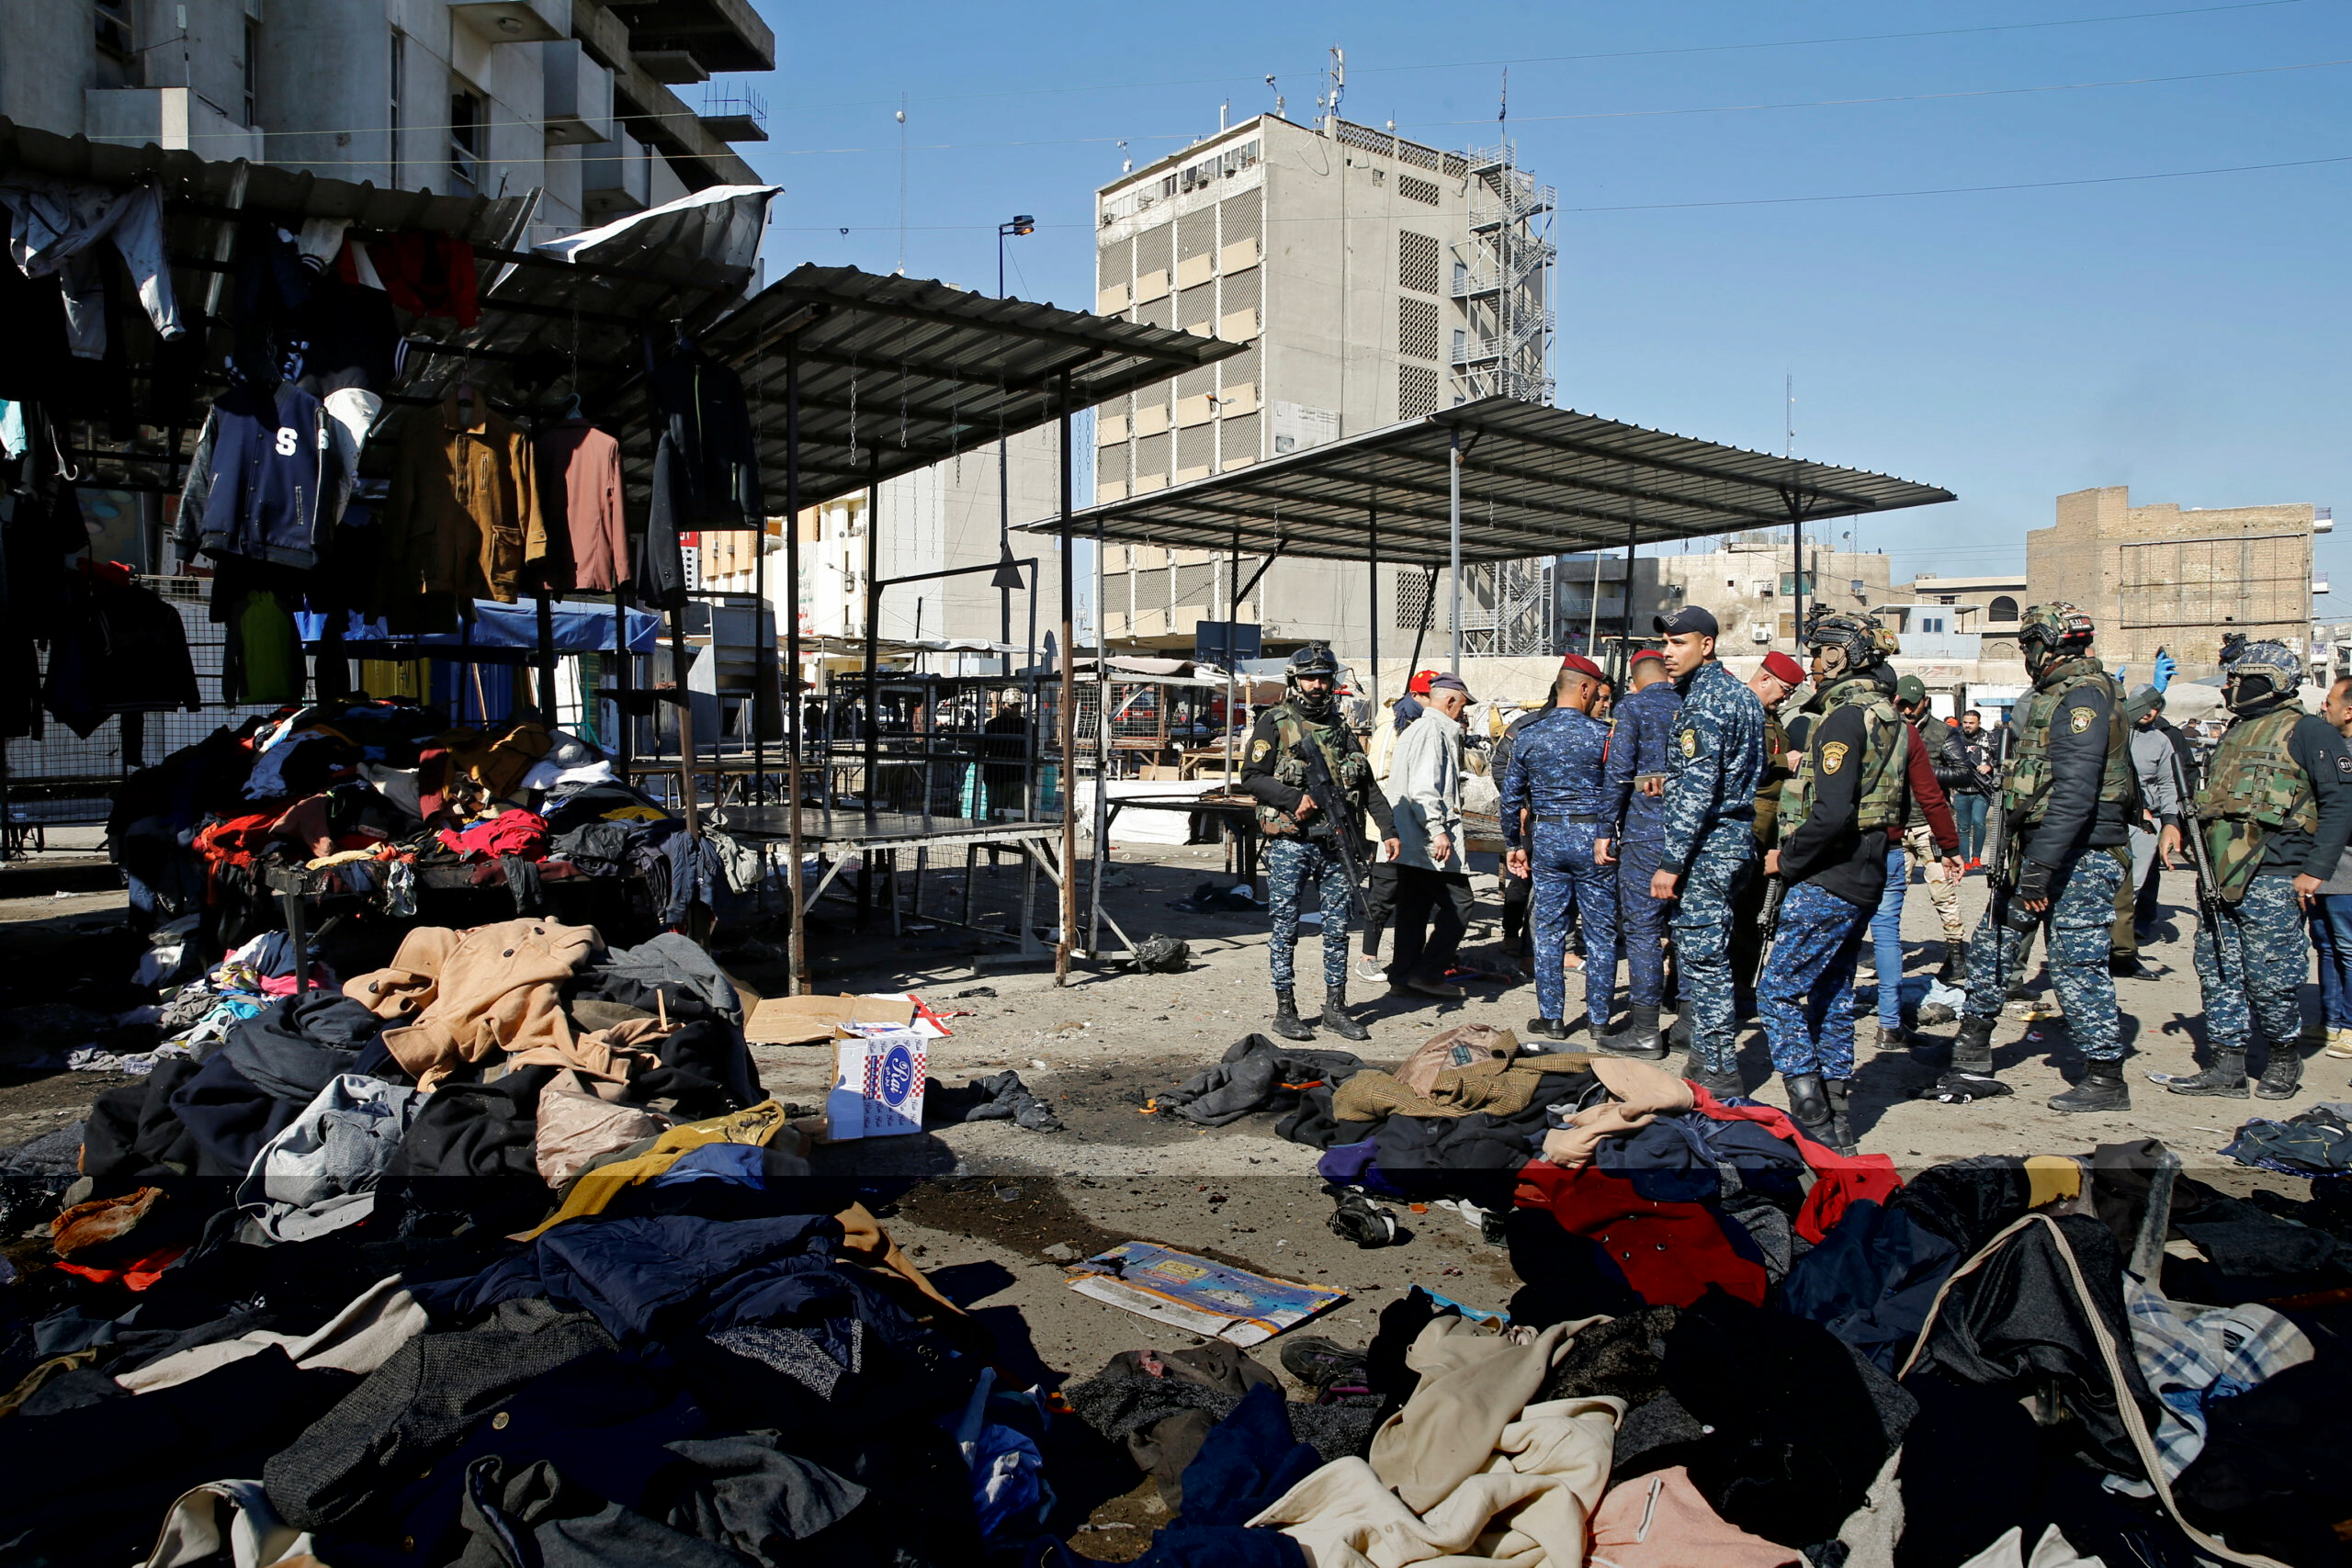 Members of Iraqi security forcers inspect site of suicide attack in Baghdad